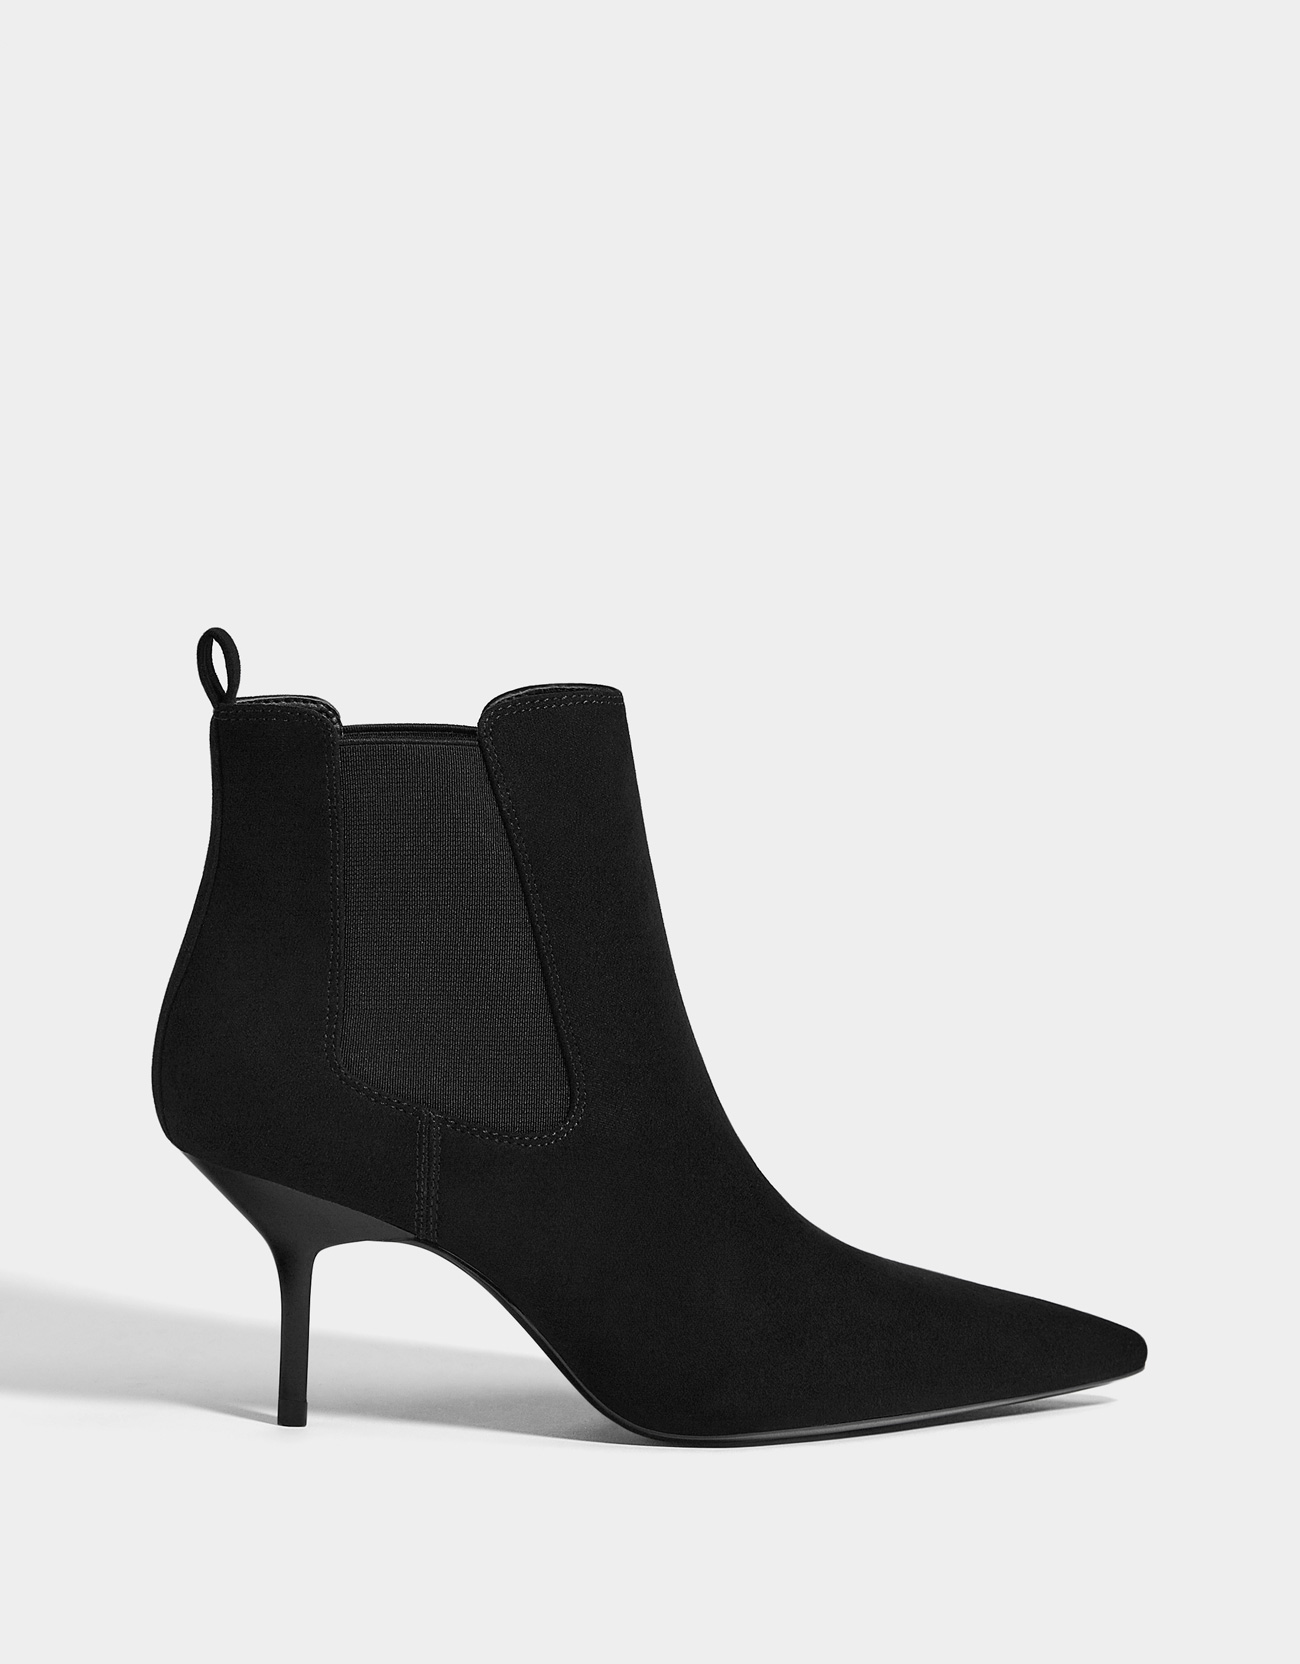 a0dfb0505d2e Stretch high-heel ankle boots - Micro Site Influencer - Bershka ...